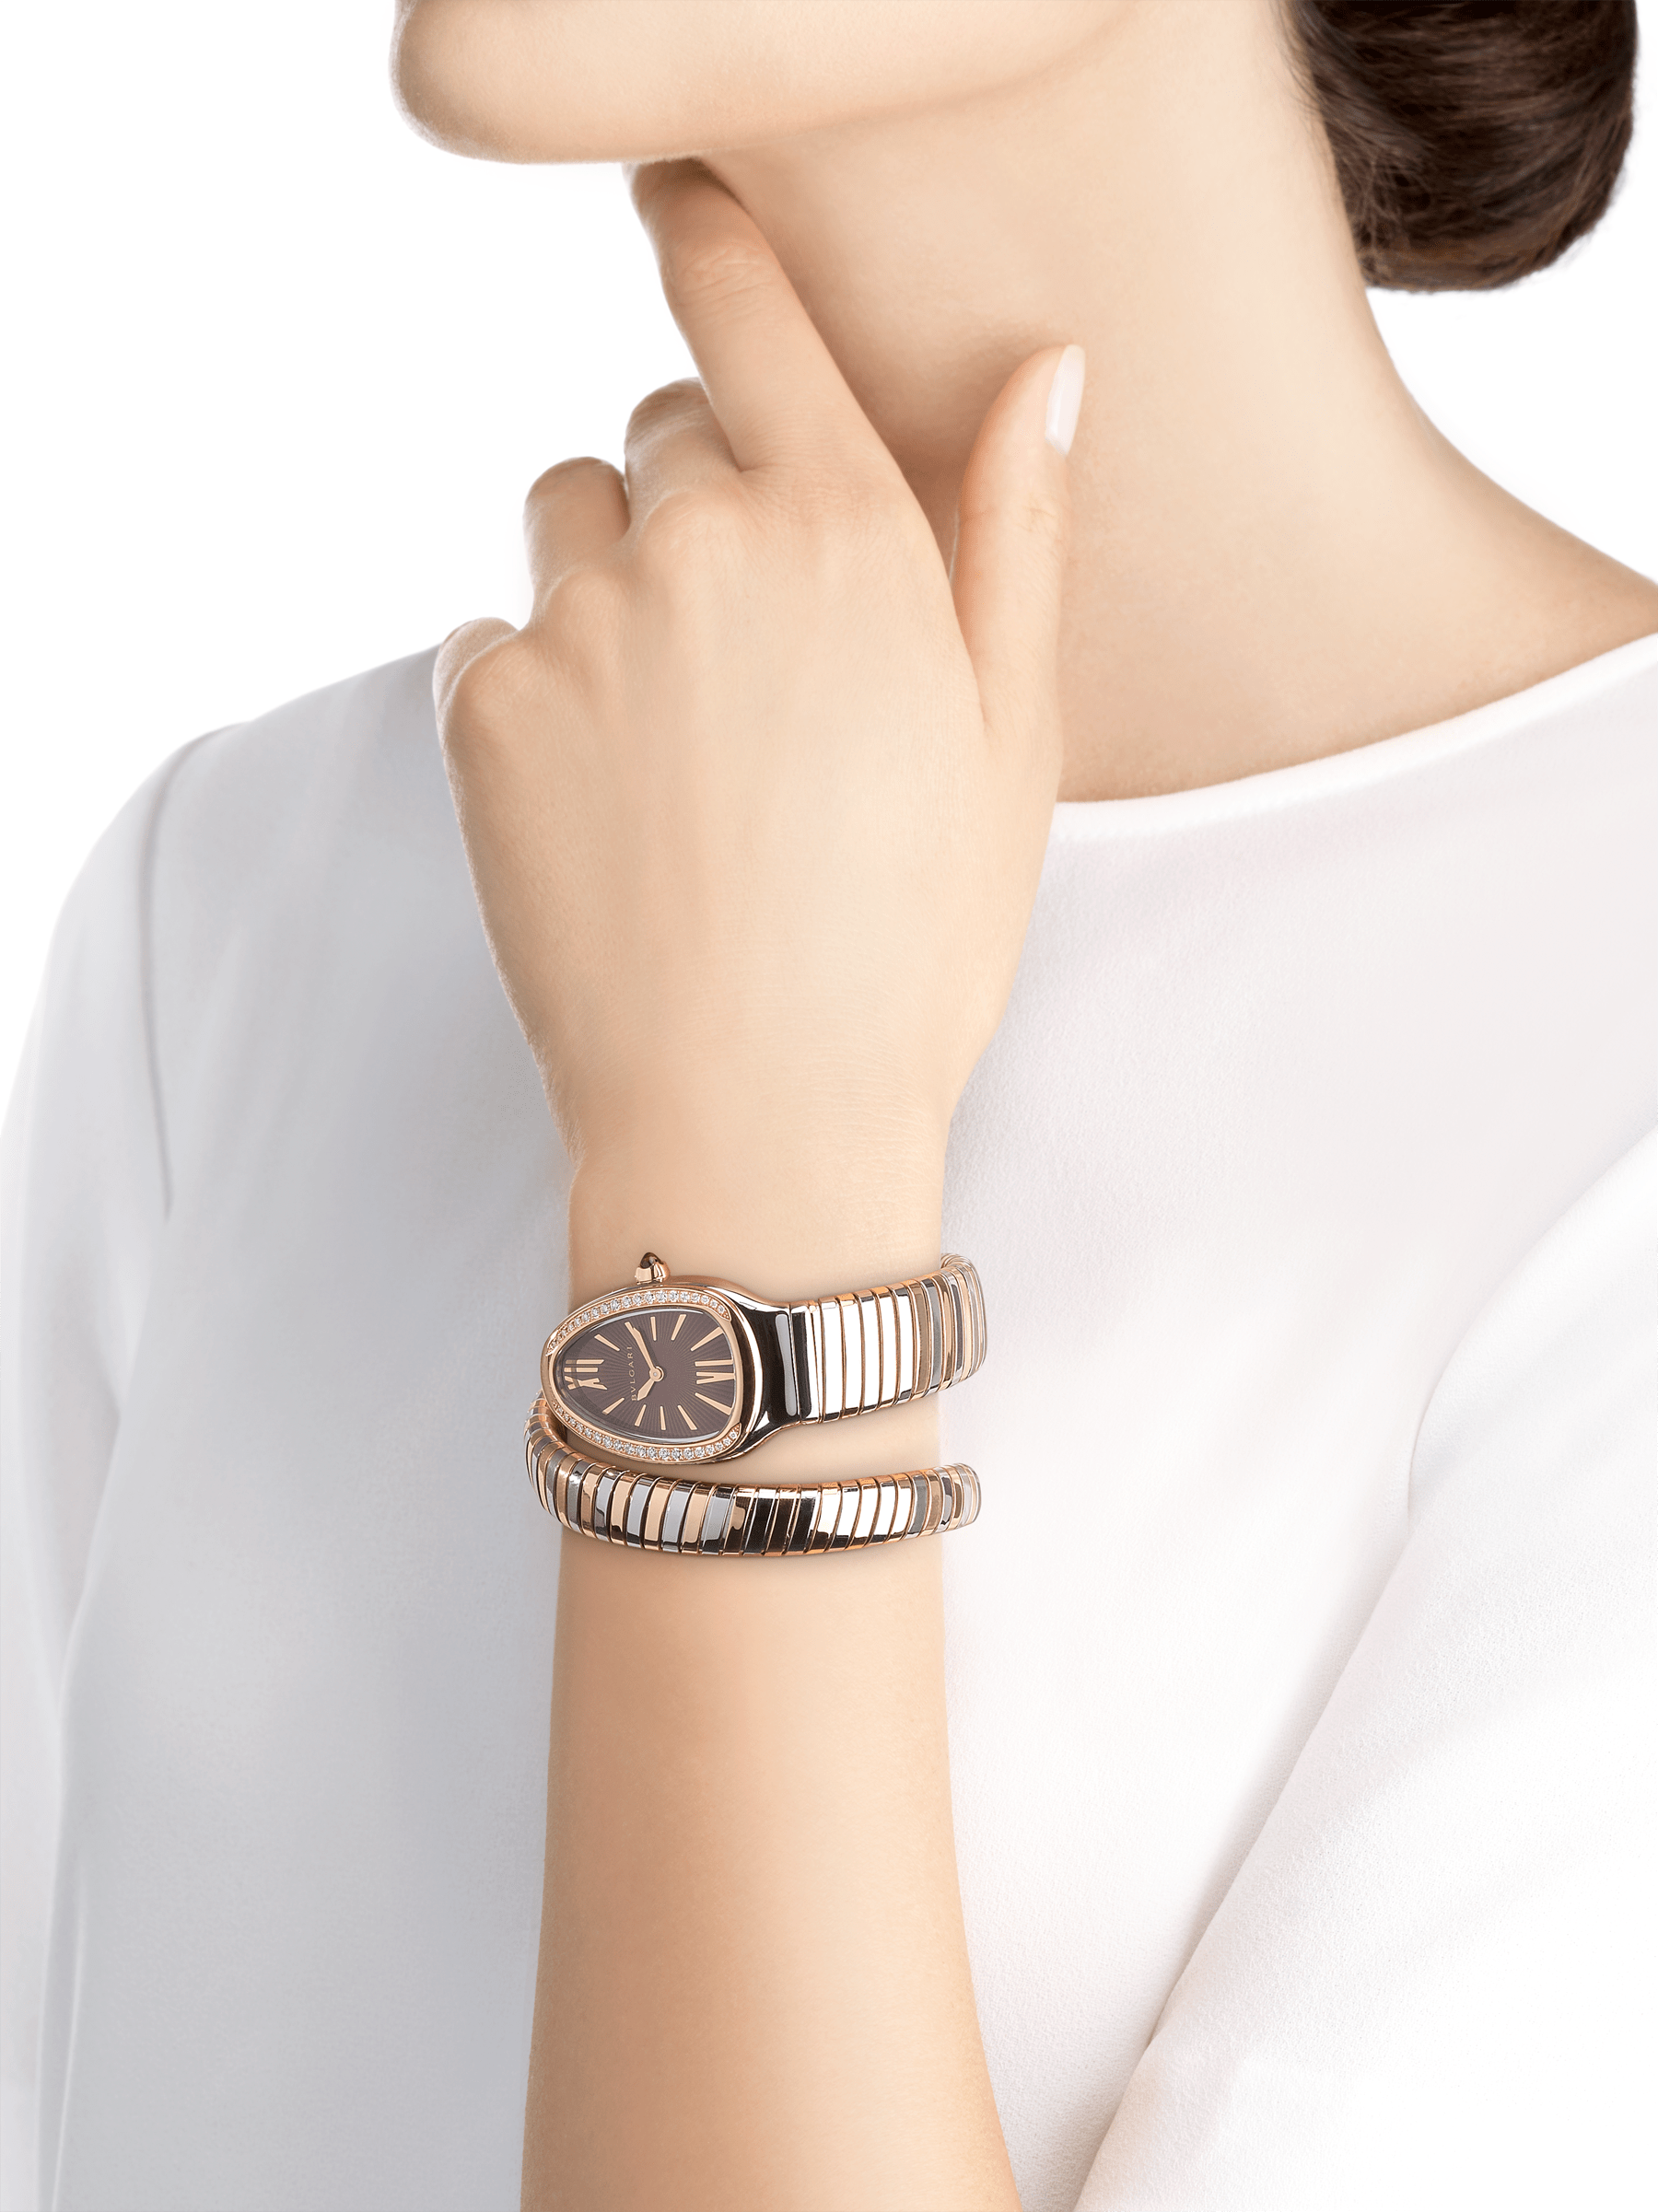 Serpenti Tubogas single spiral watch with stainless steel case, 18 kt rose gold bezel set with brilliant-cut diamonds, brown dial with guilloché soleil treatment, stainless steel and 18 kt rose gold bracelet 103071 image 4